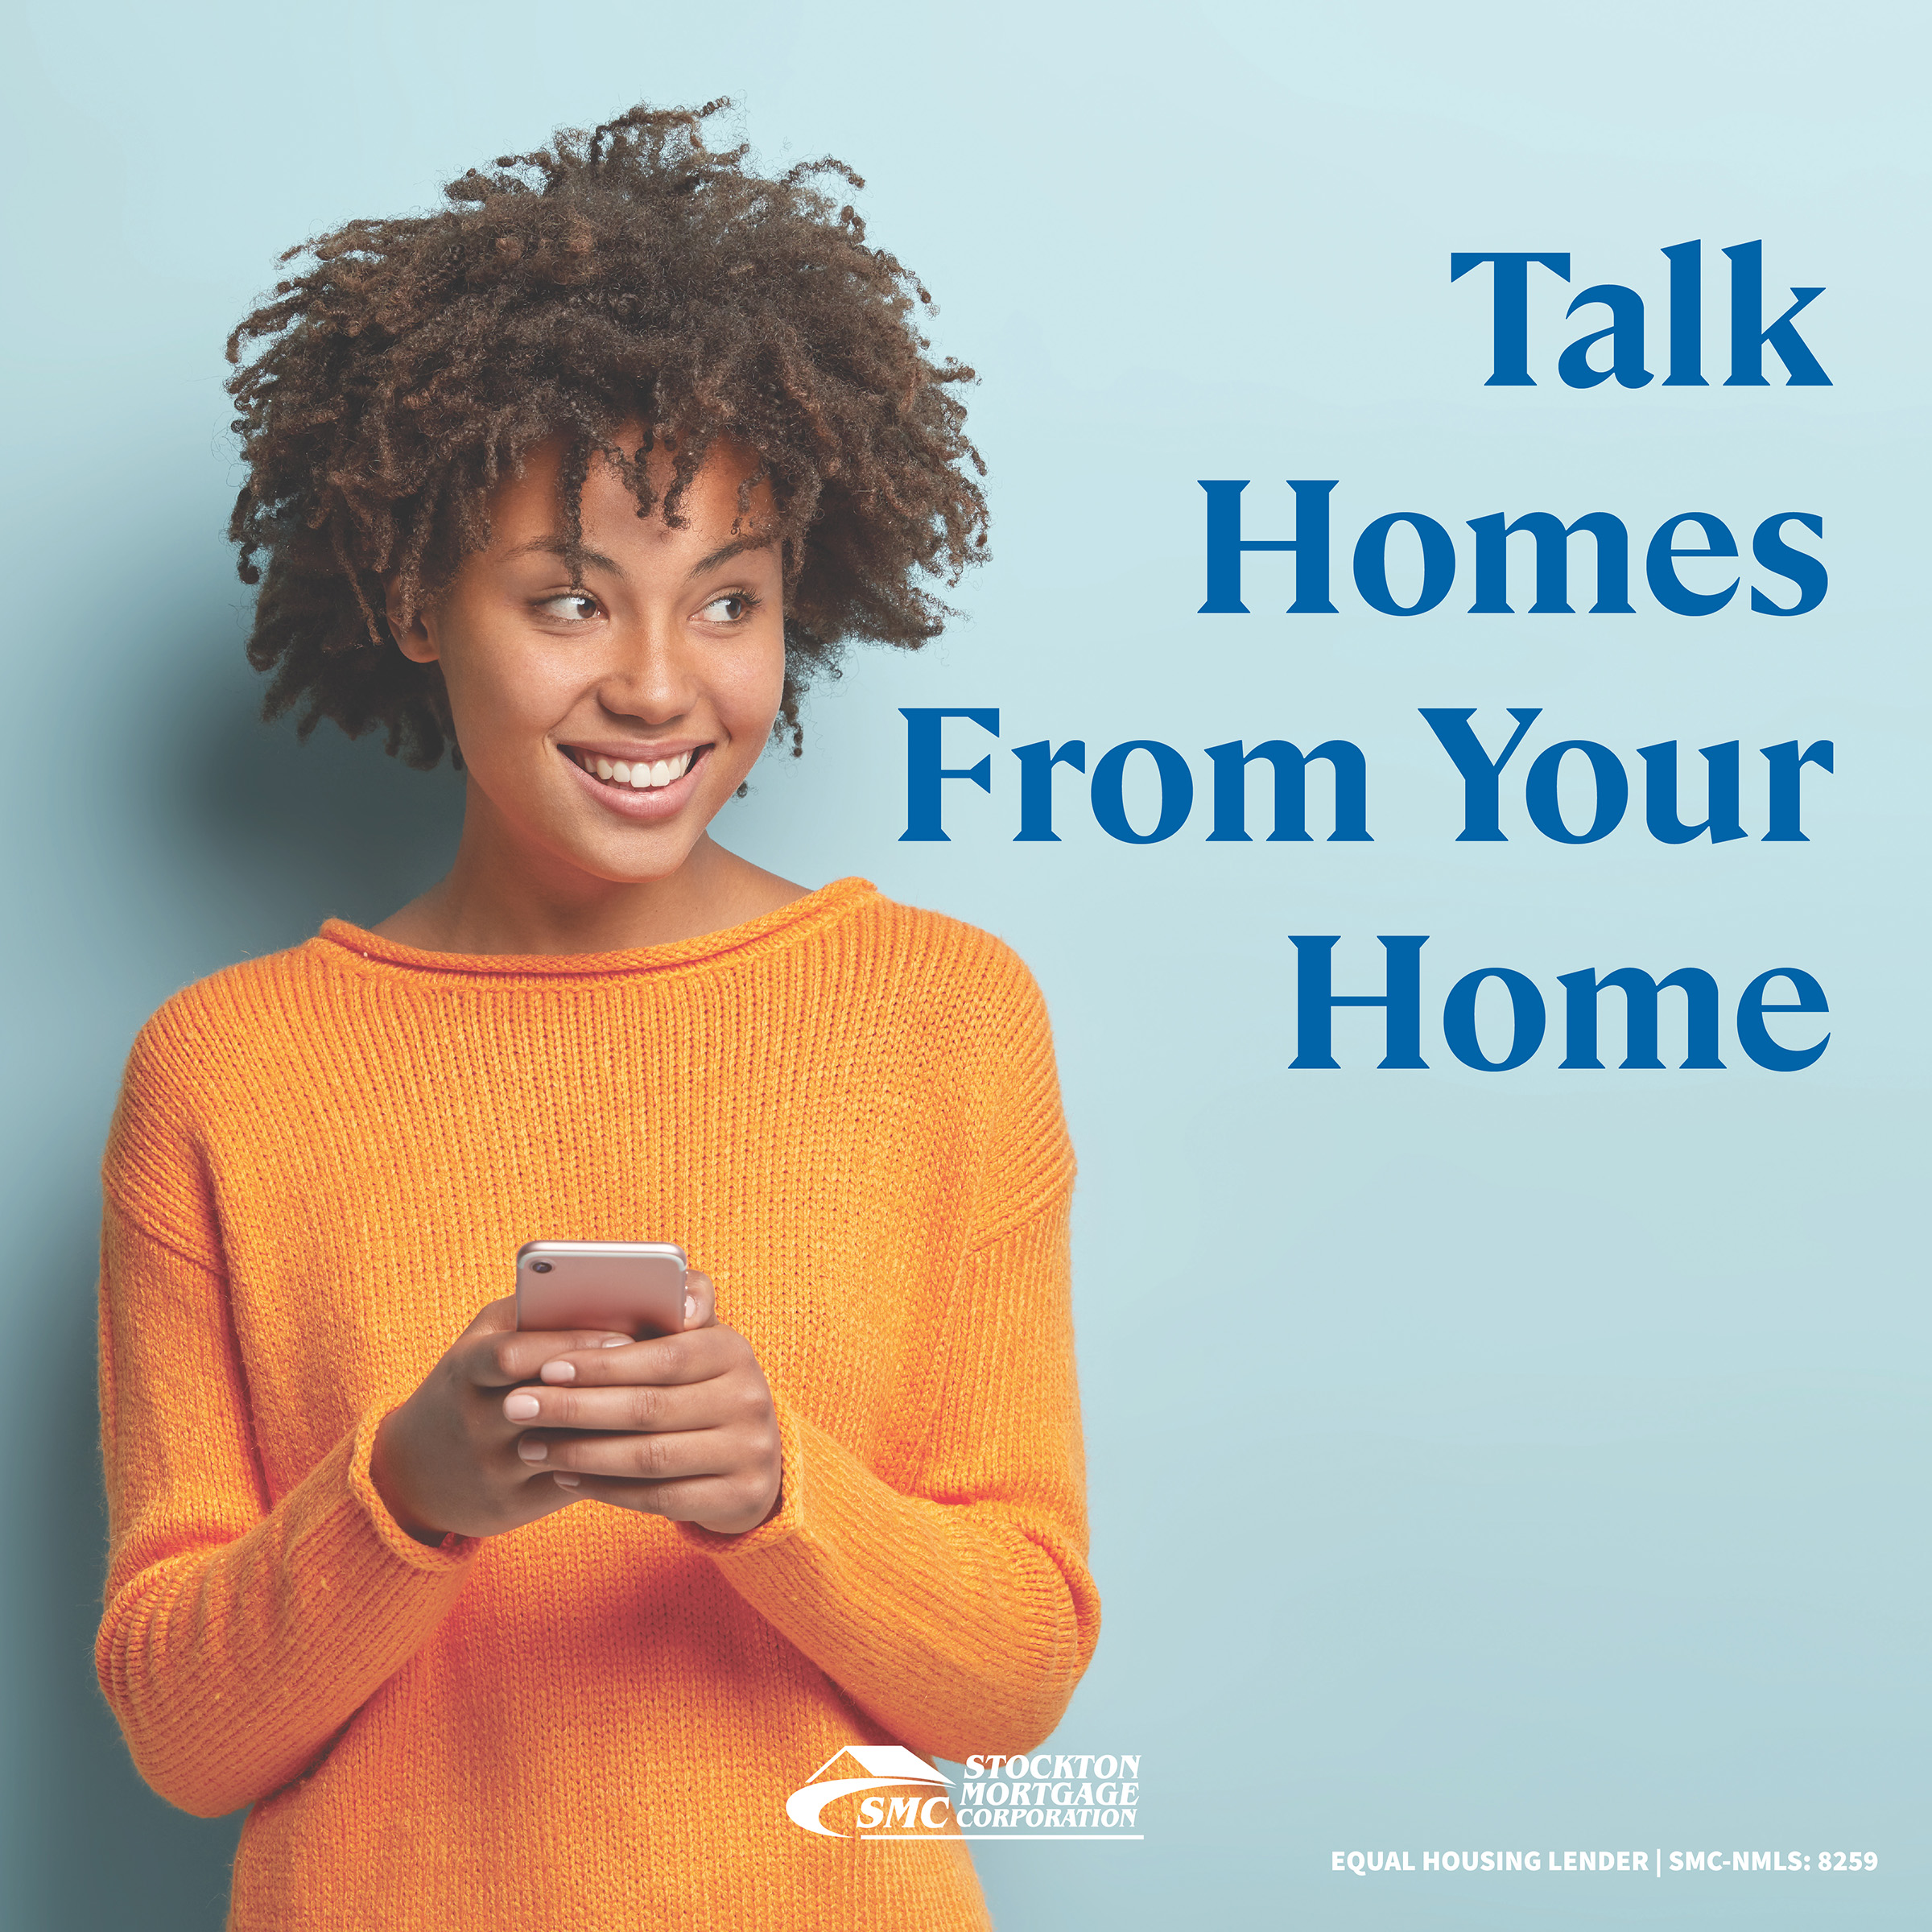 Talk homes from